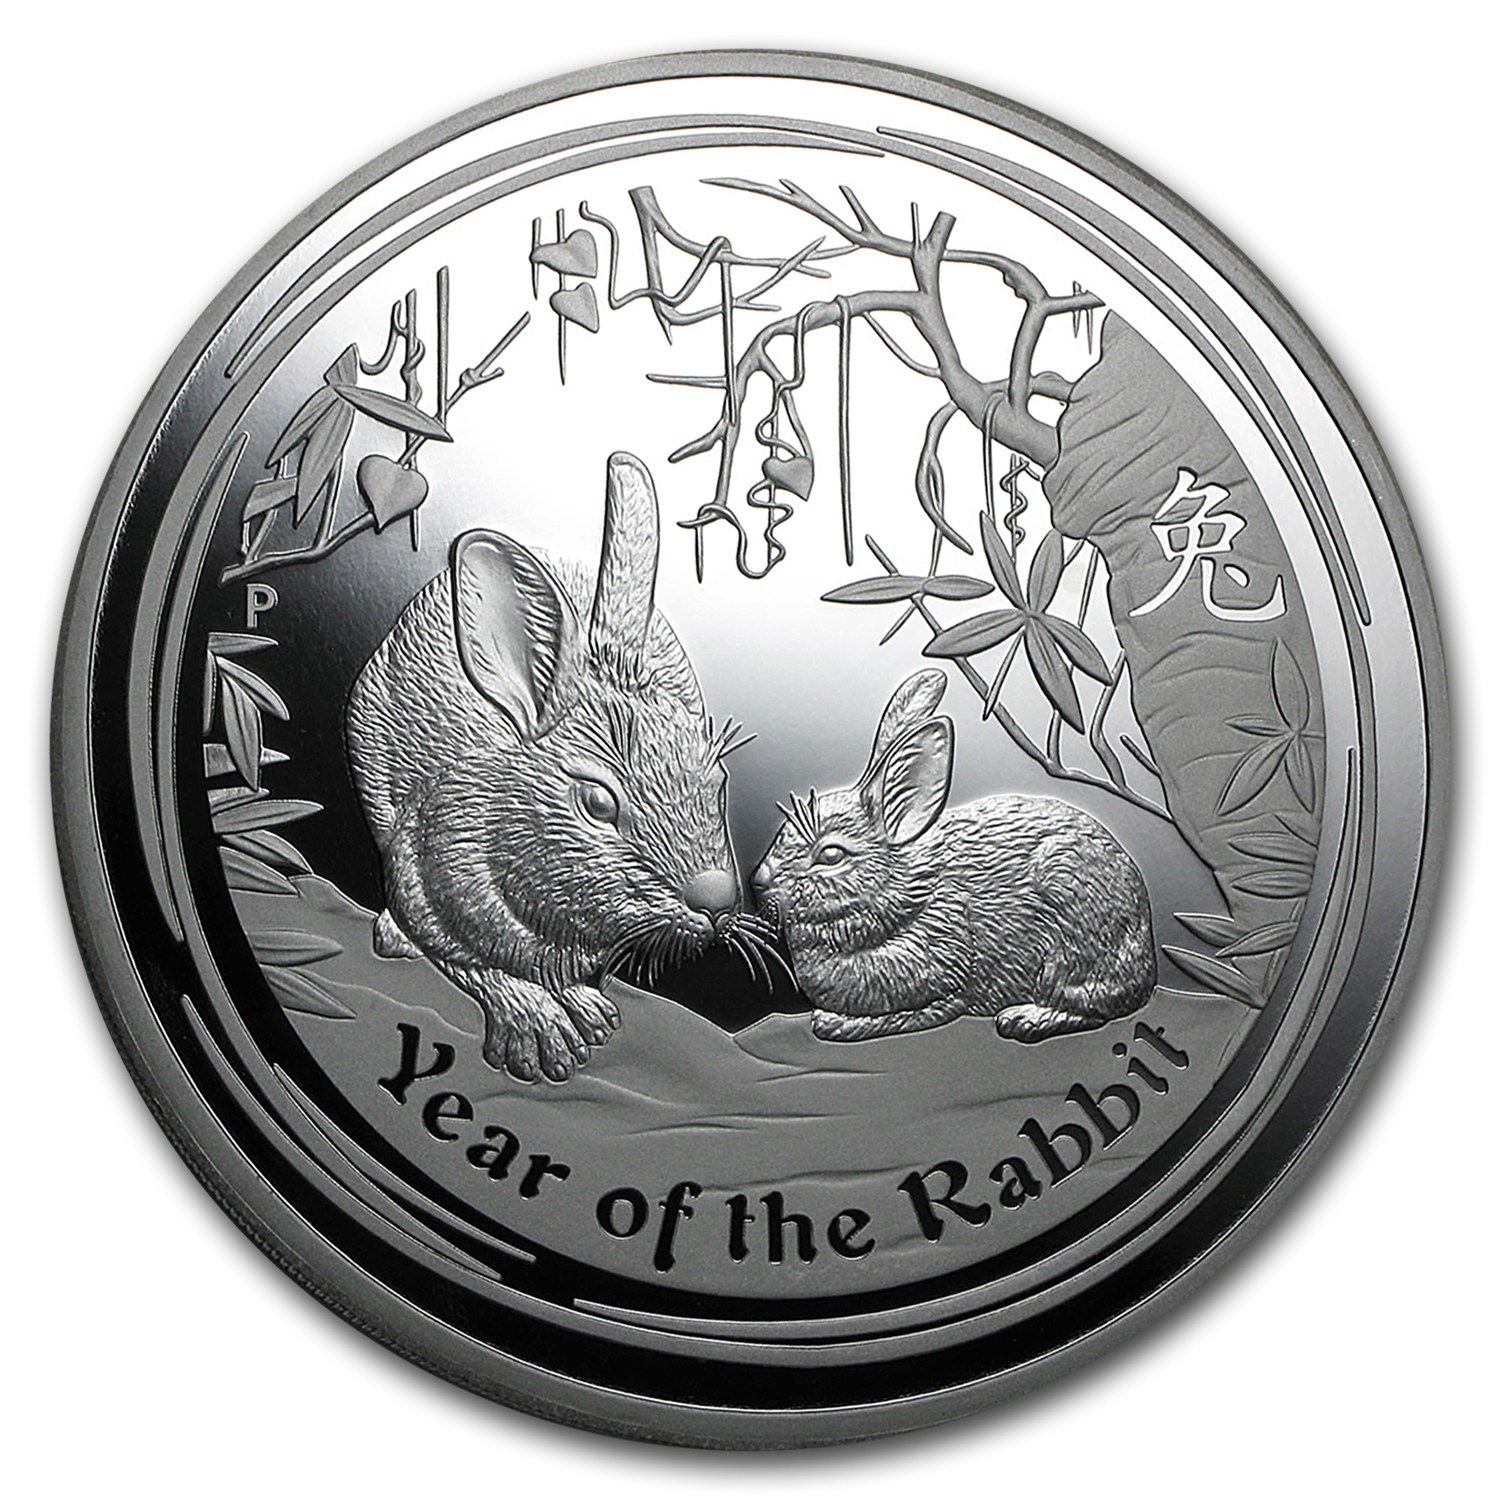 2011 Australia 1 kilo Silver Year of the Rabbit Proof